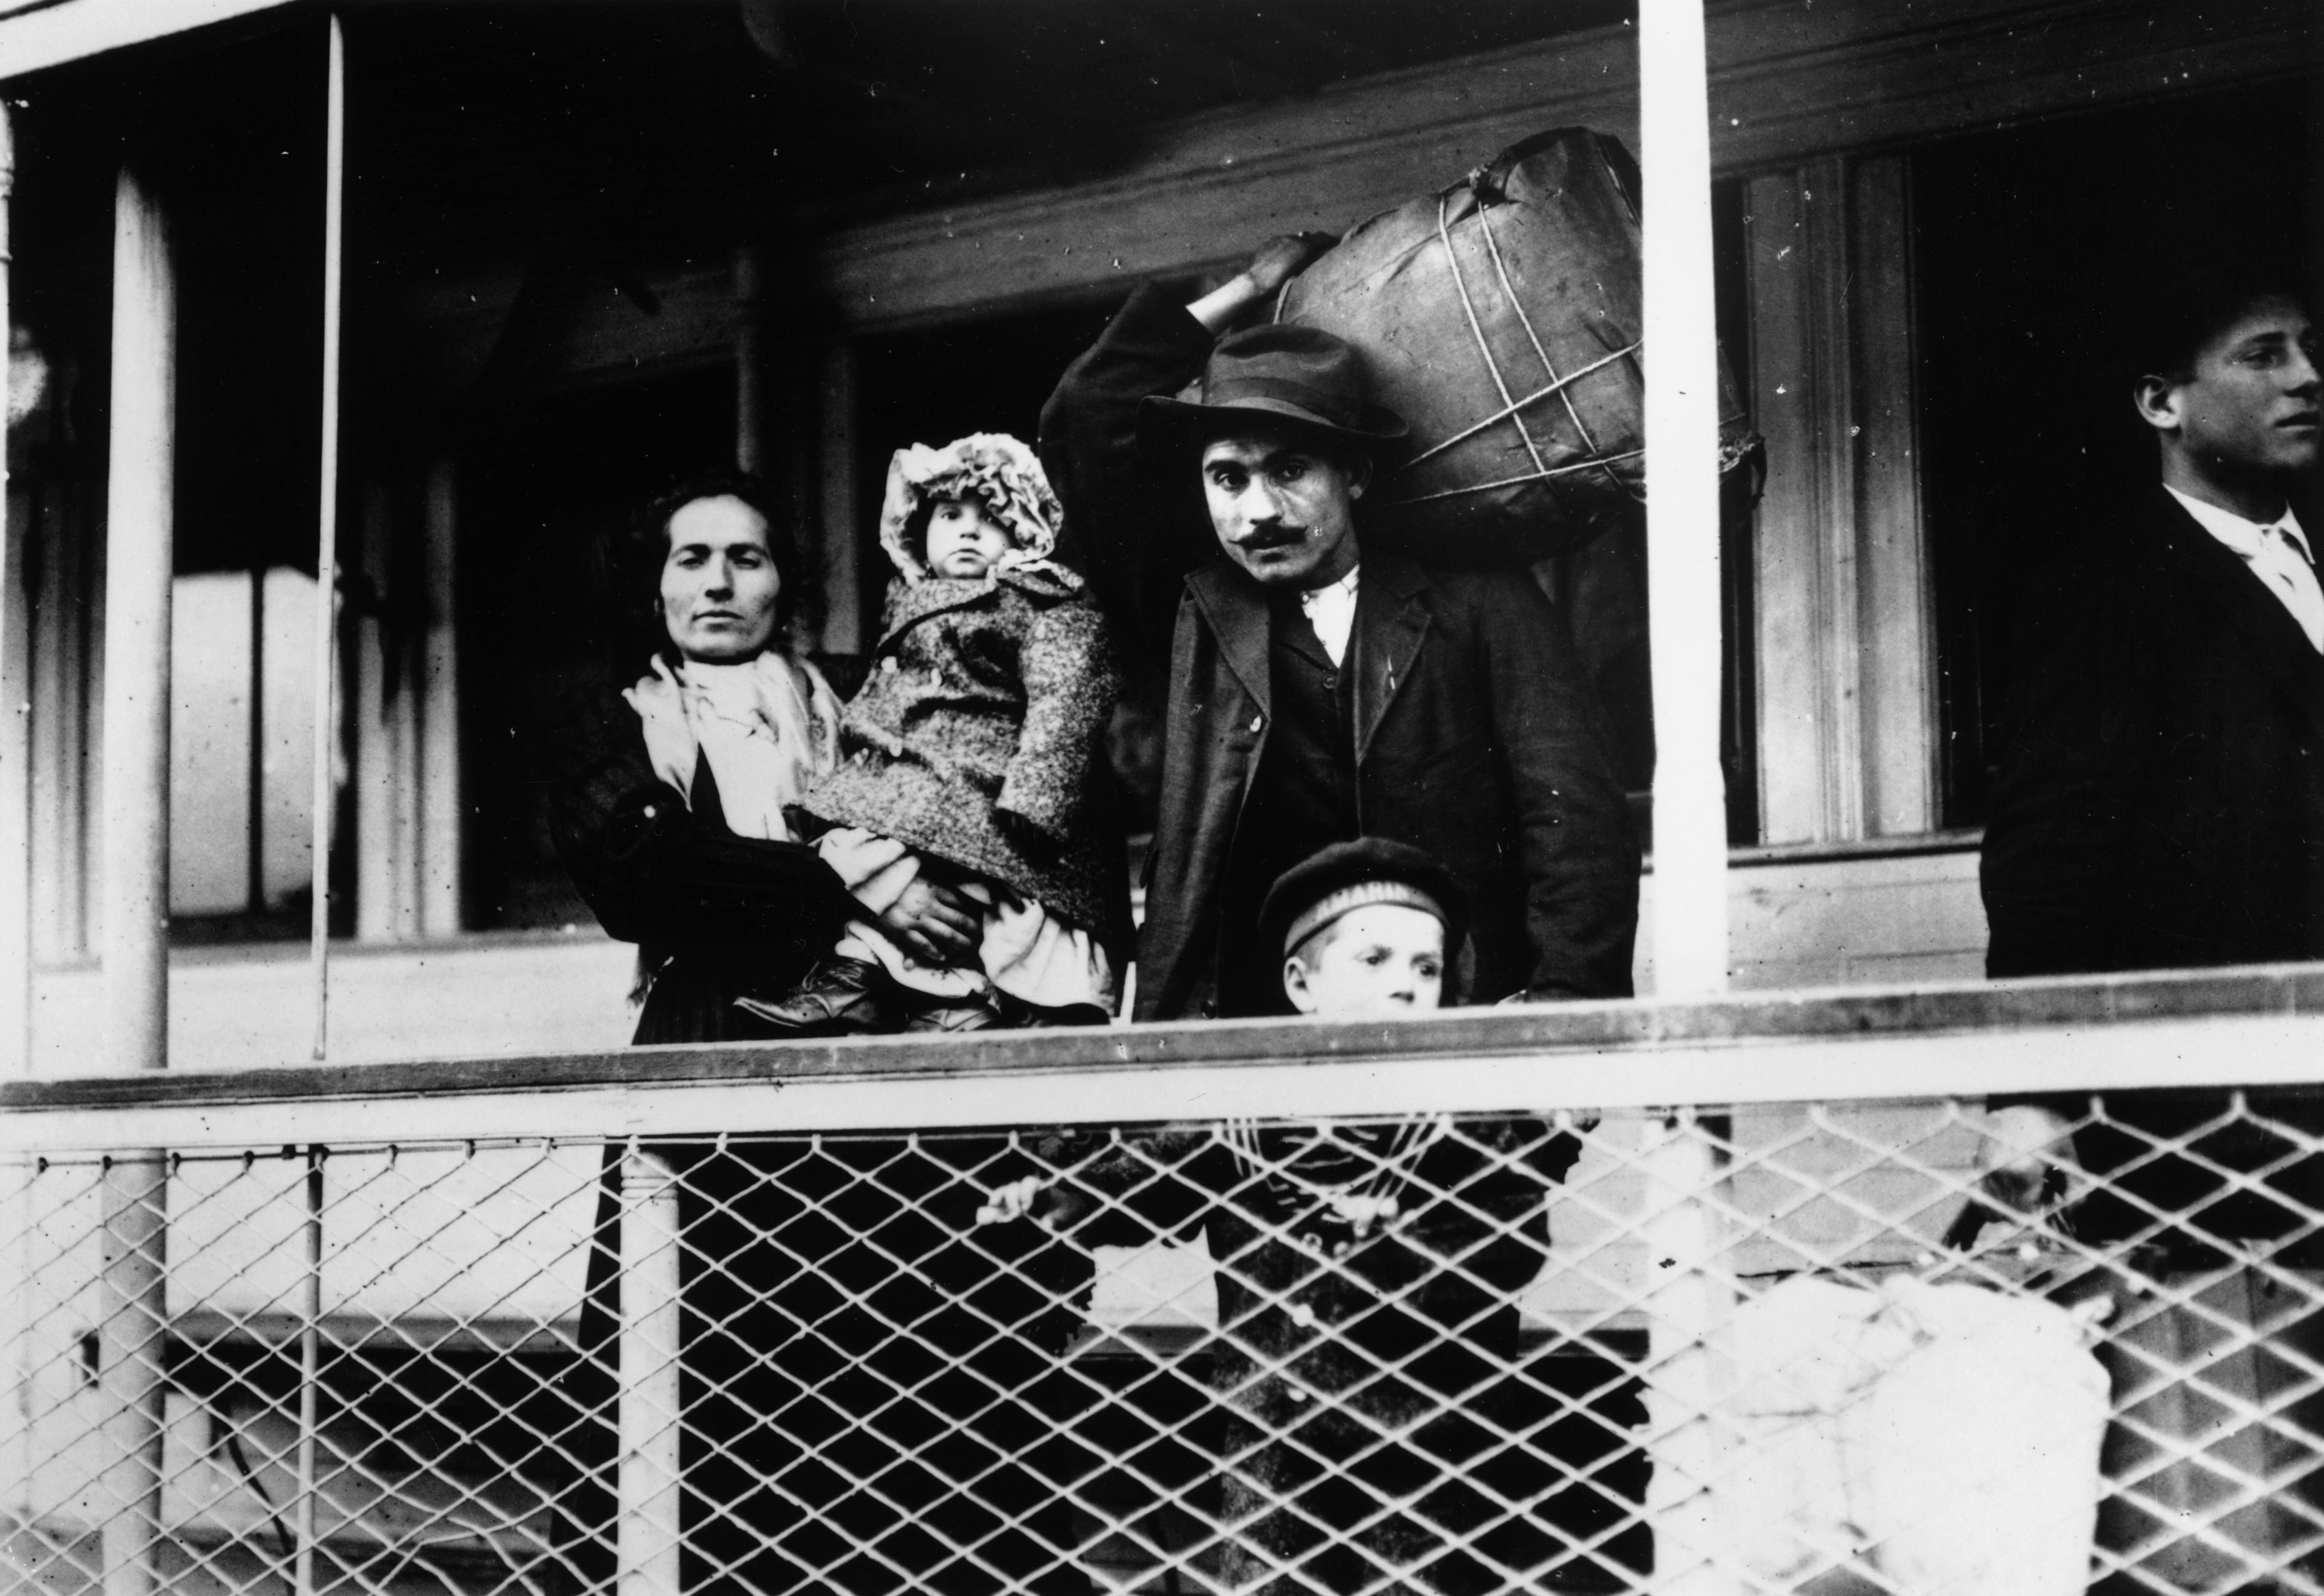 Italian immigrants on board a ferry from the docks to Ellis Island, New York